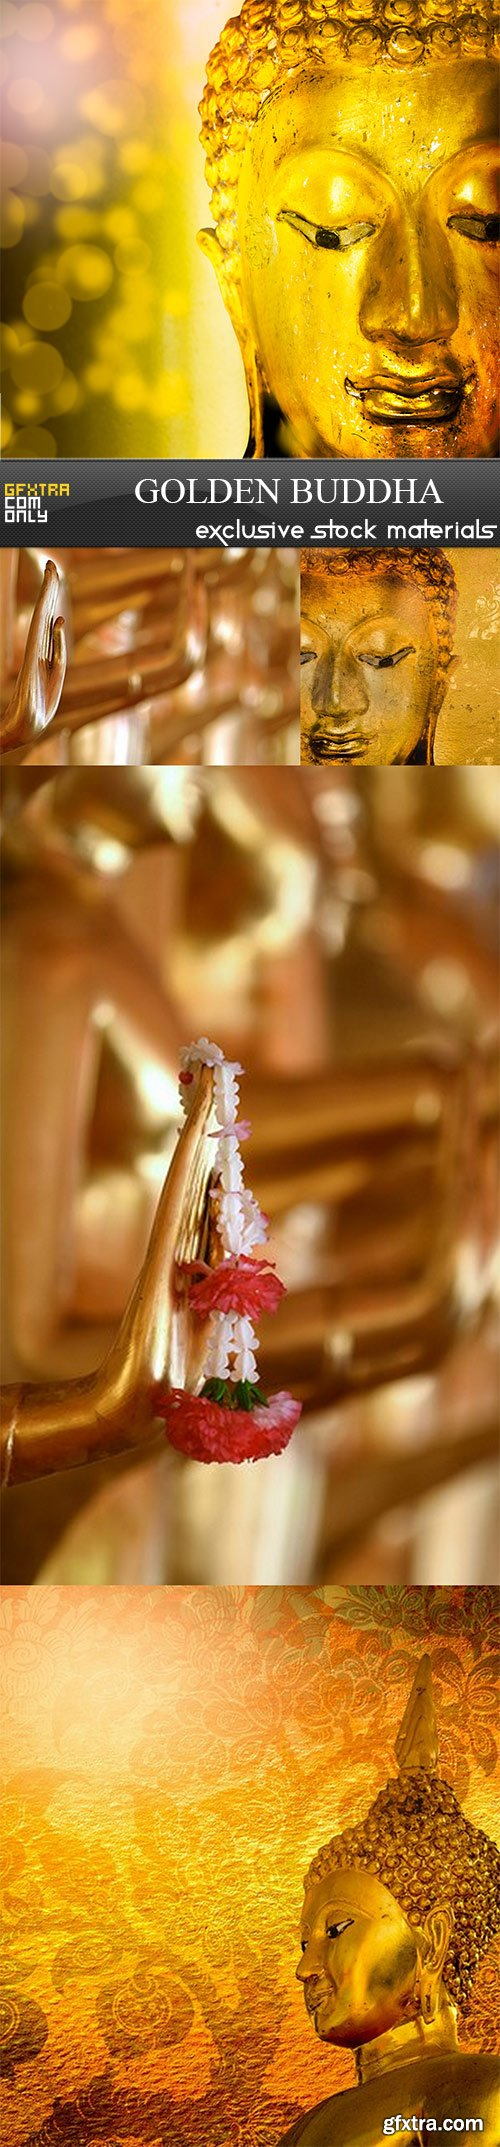 Golden Buddha - 5 UHQ JPEG